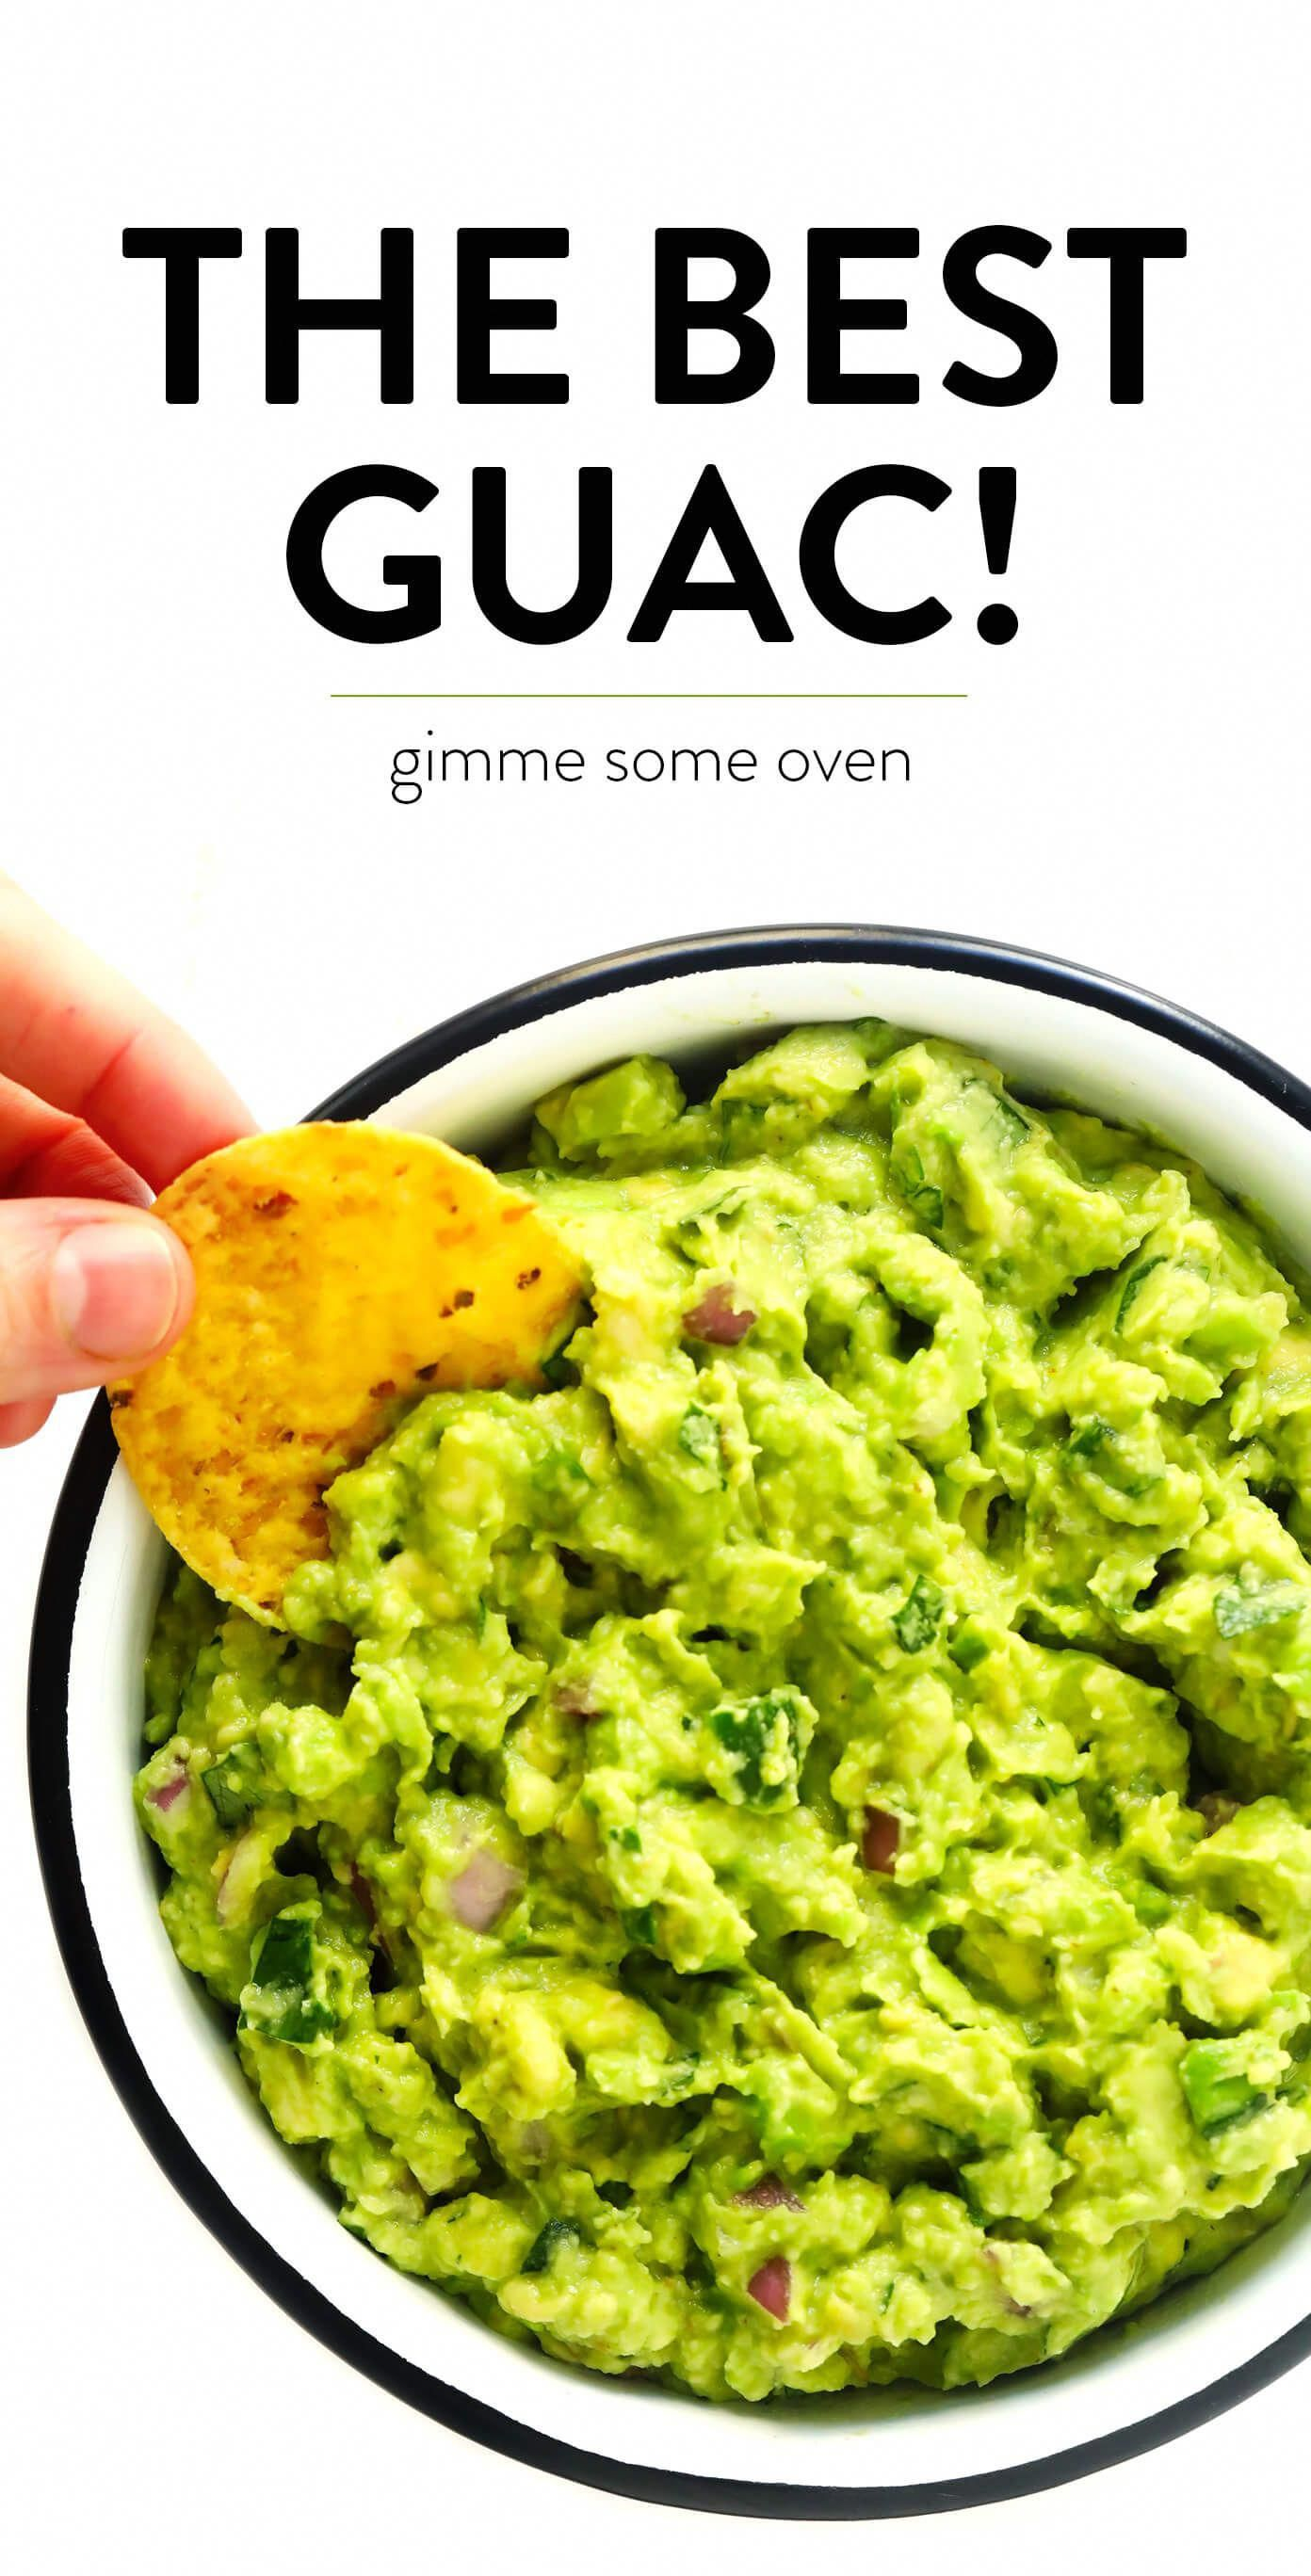 The BEST guacamole recipe!! Its quick and easy to make, and always the hit of a party. Serve it up